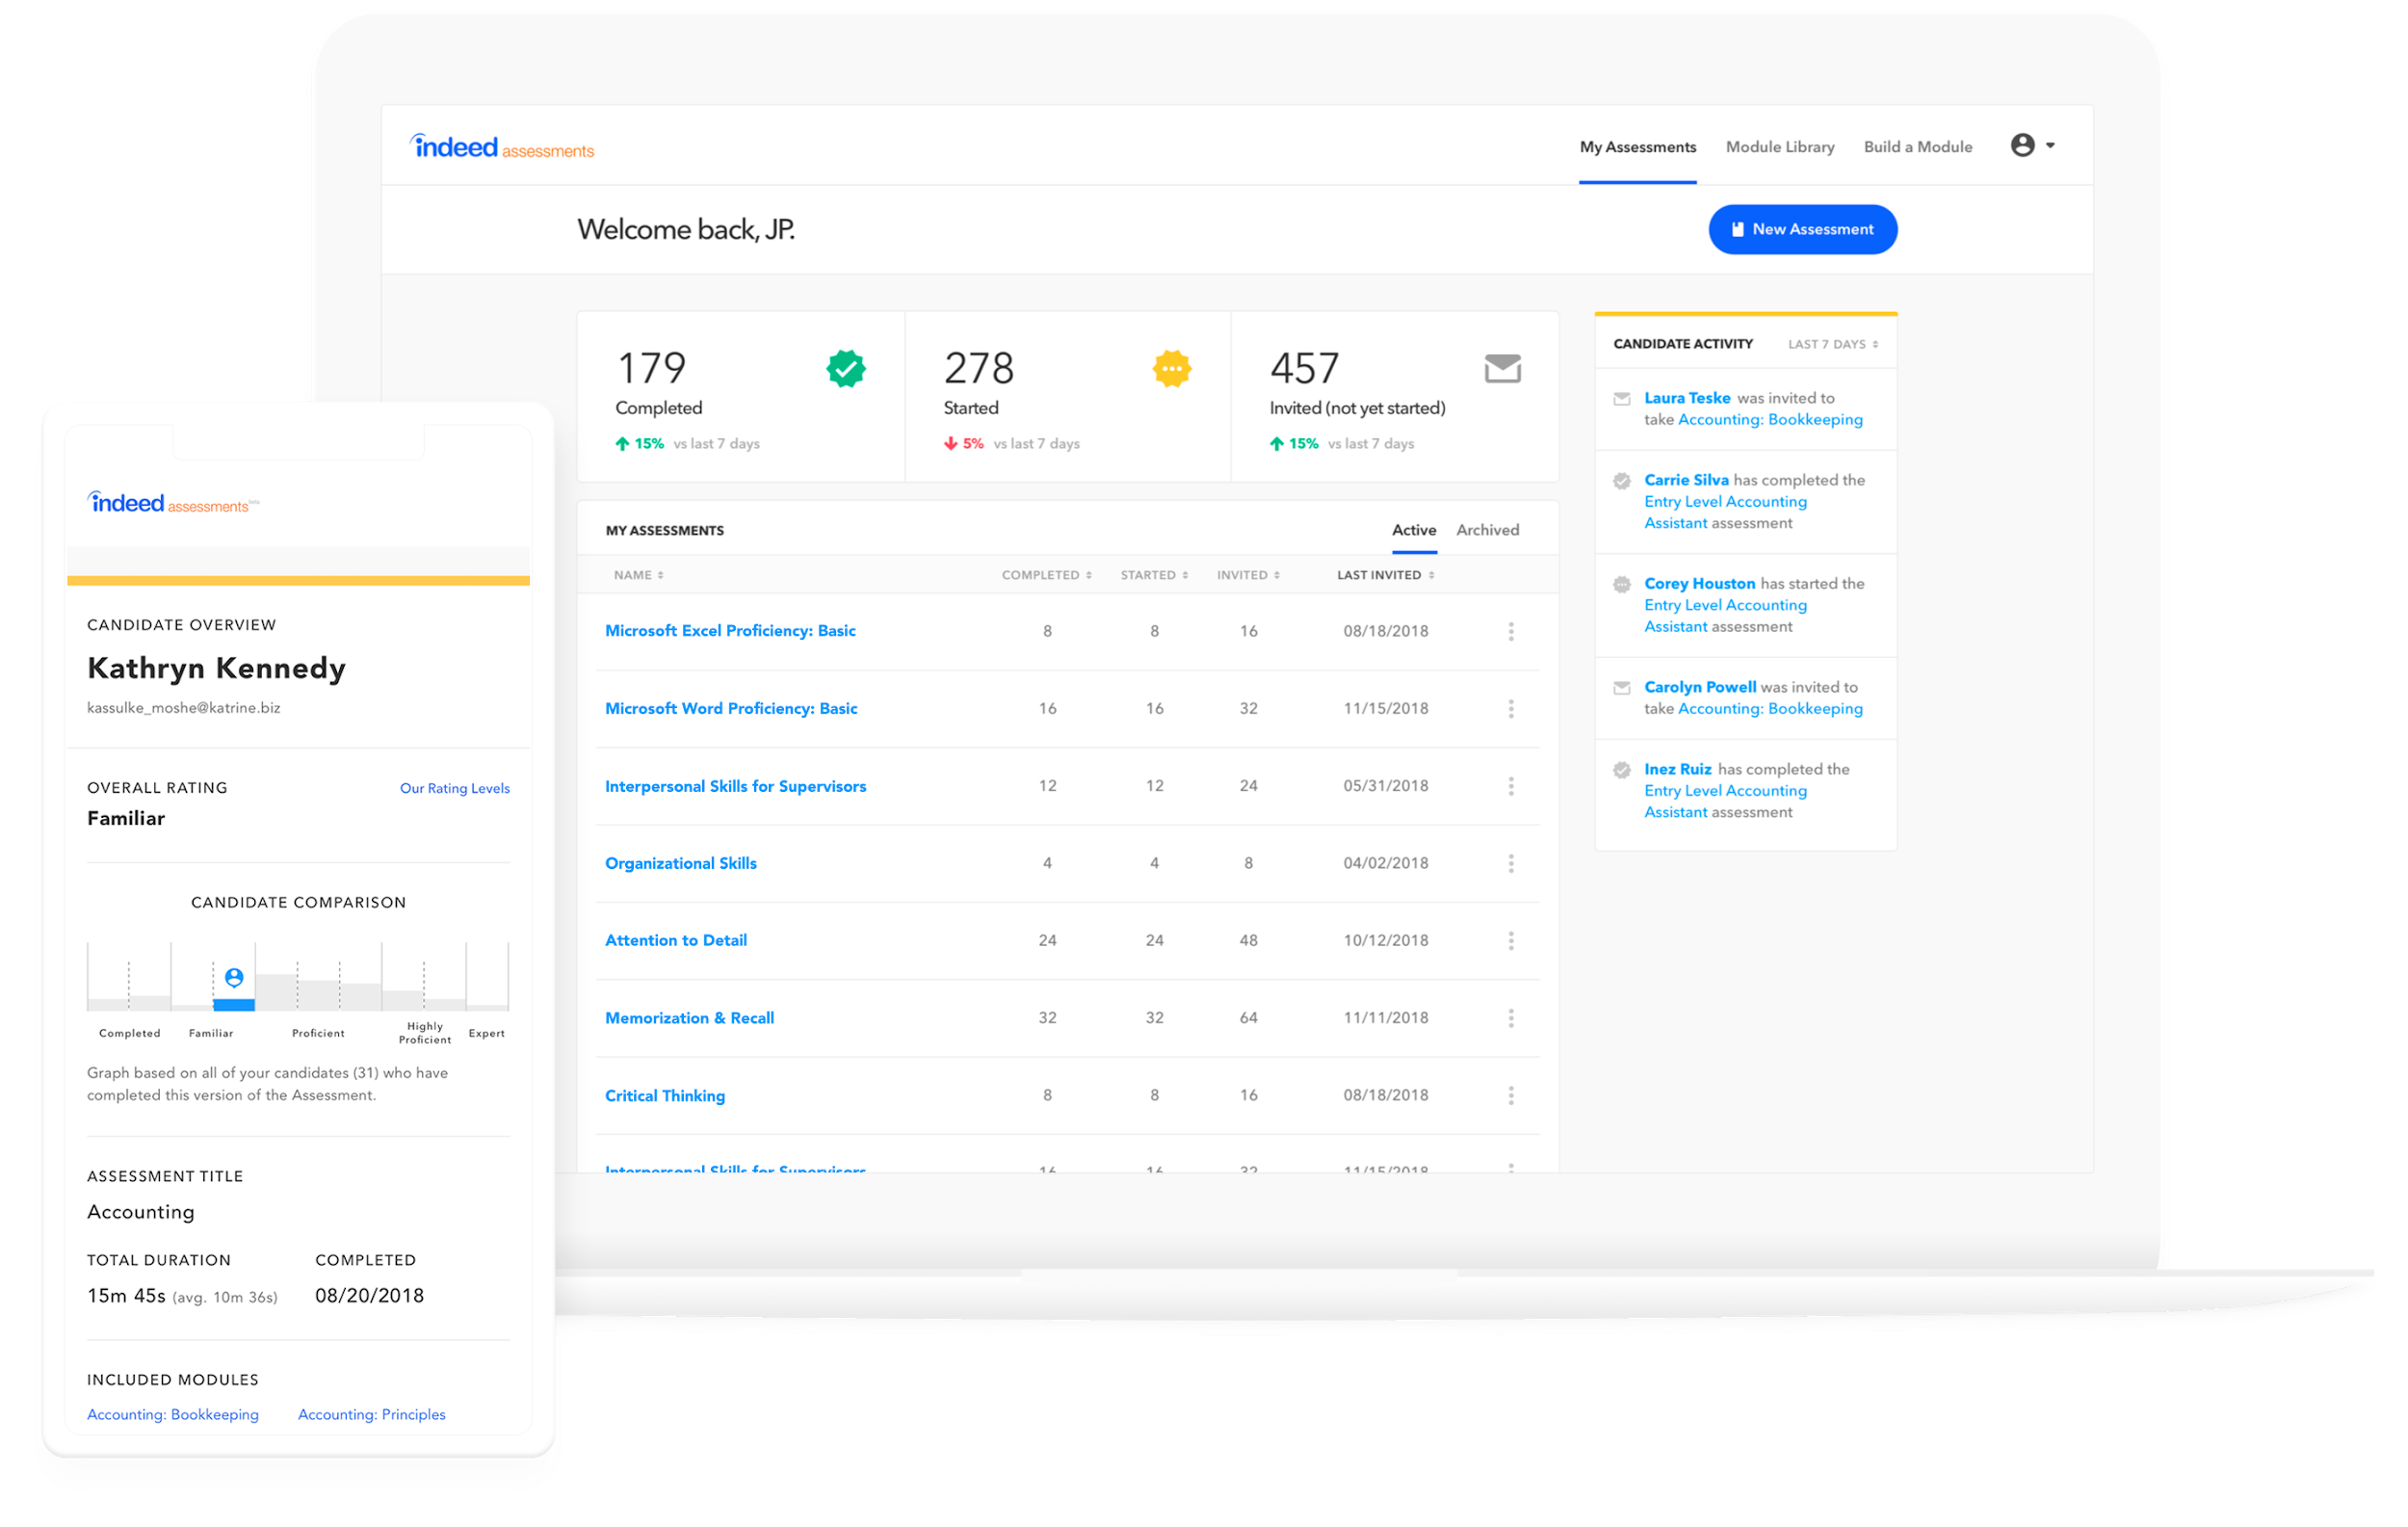 indeed applicant tracking system dashboard